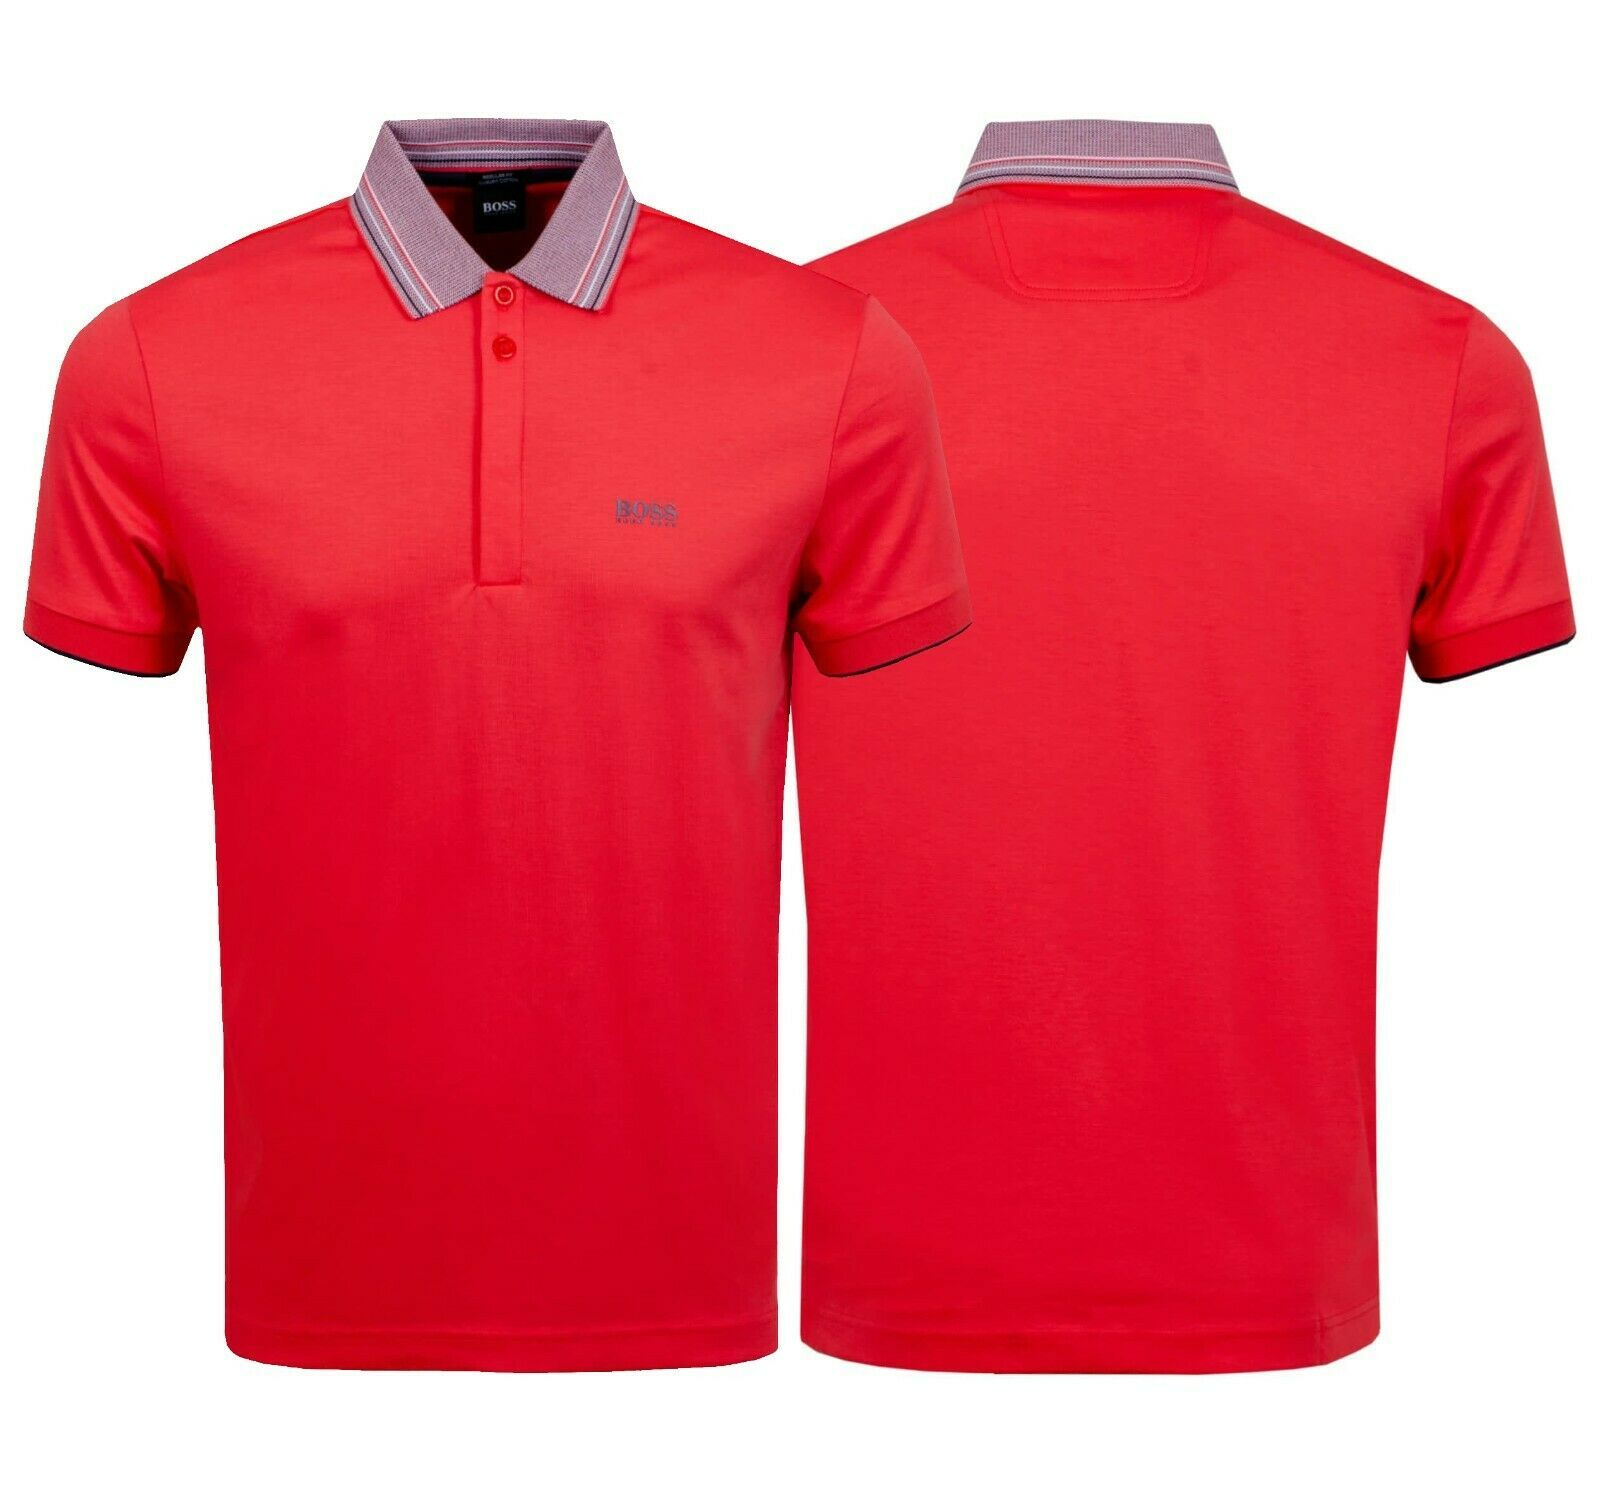 Hugo Boss Men's Short Sleeve Regular Fit Paddy 1 Bright Red Polo Shirt SS20